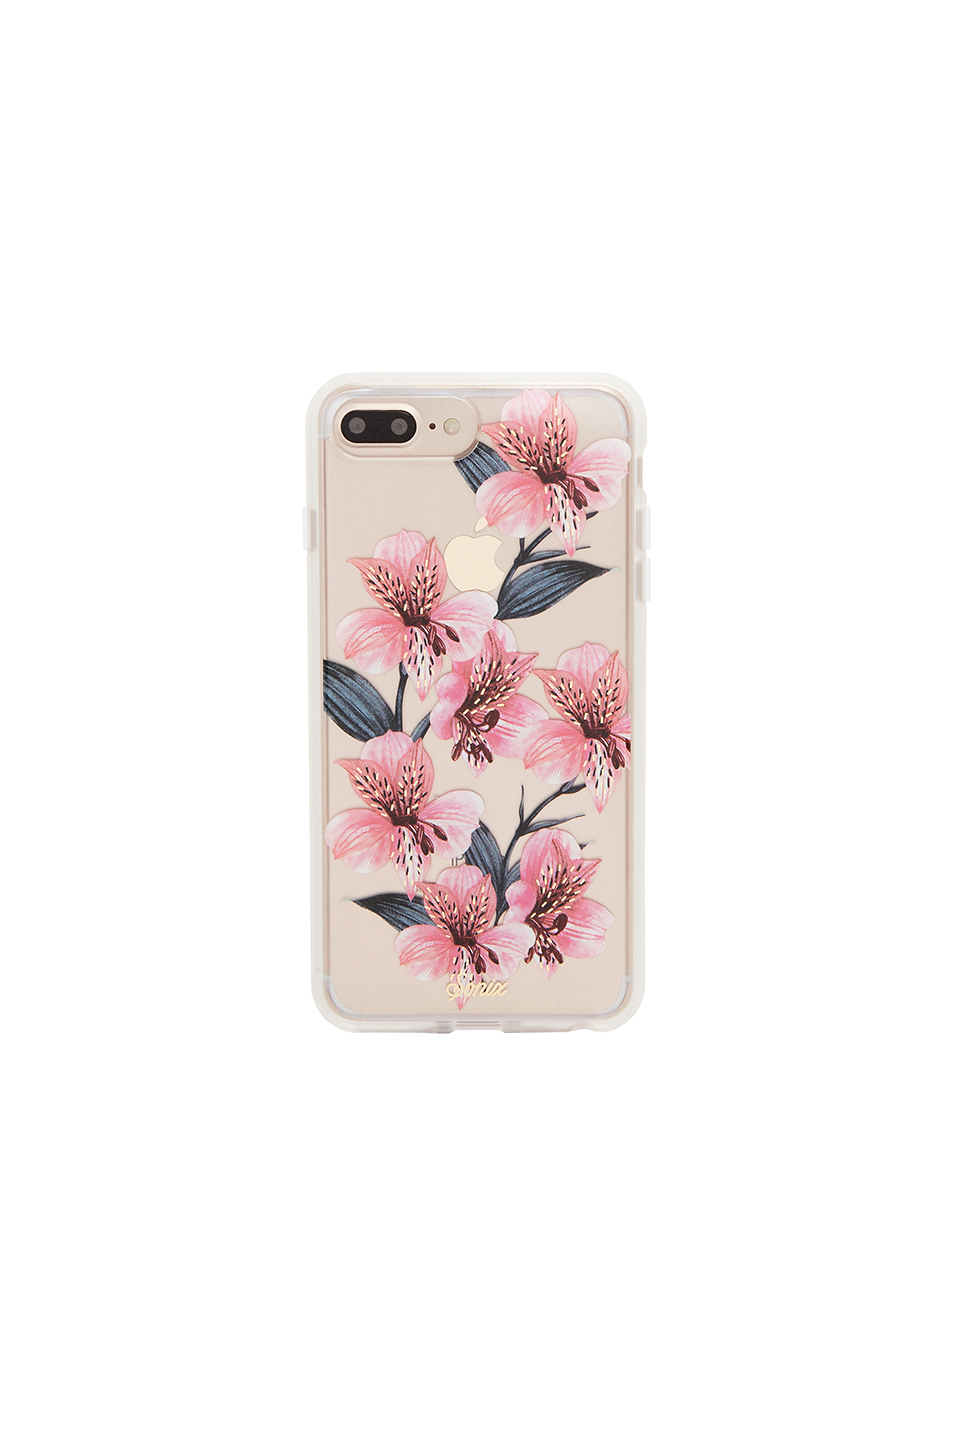 Sonix Tiger Lily iPhone 6/7/8 Plus Case in